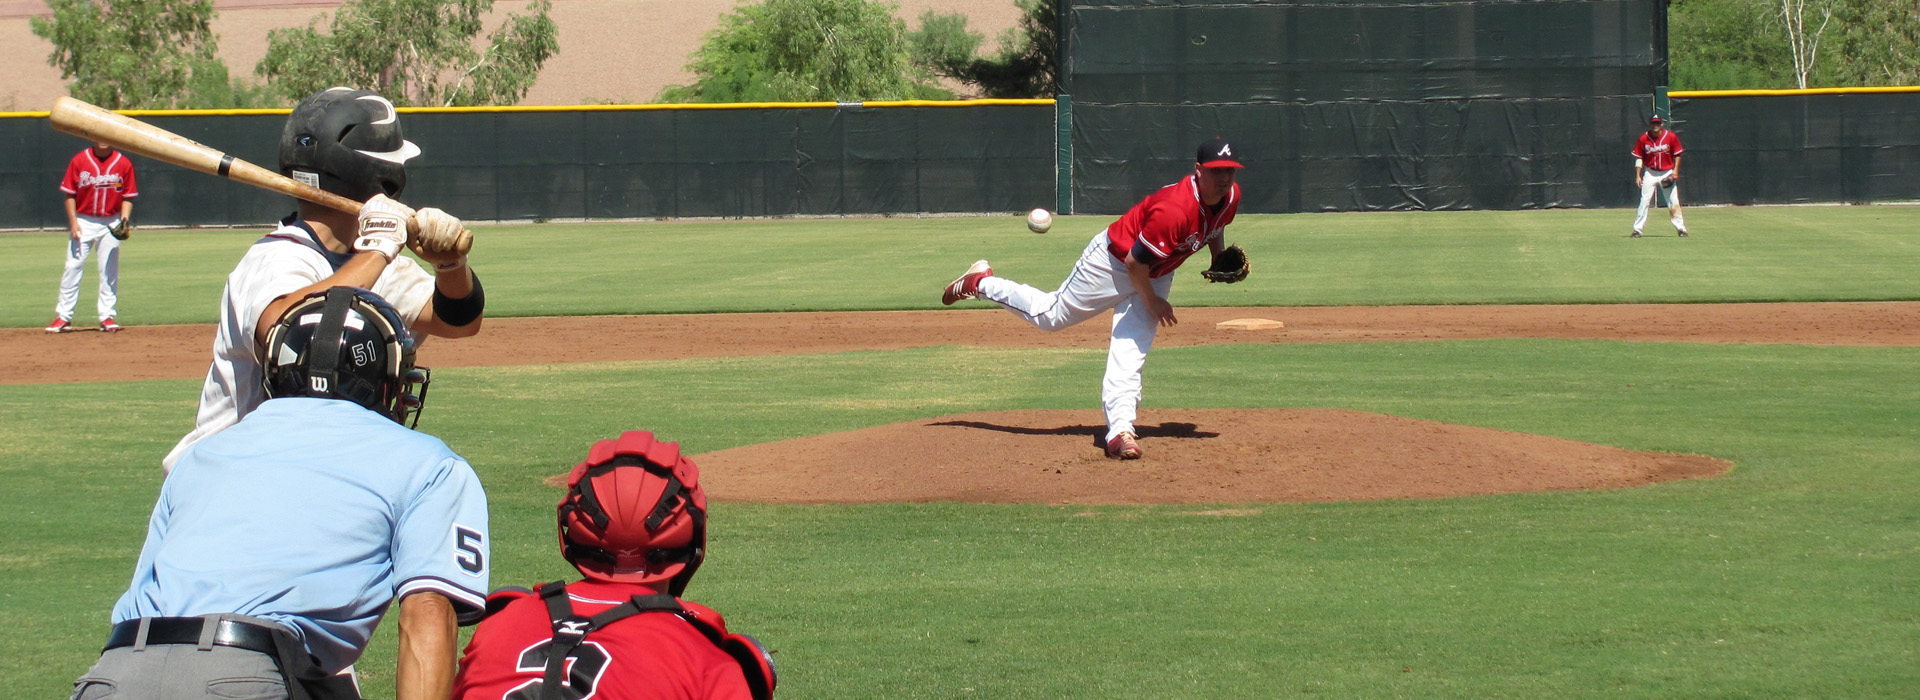 Arizona Men's Senior Baseball League - AZMSBL